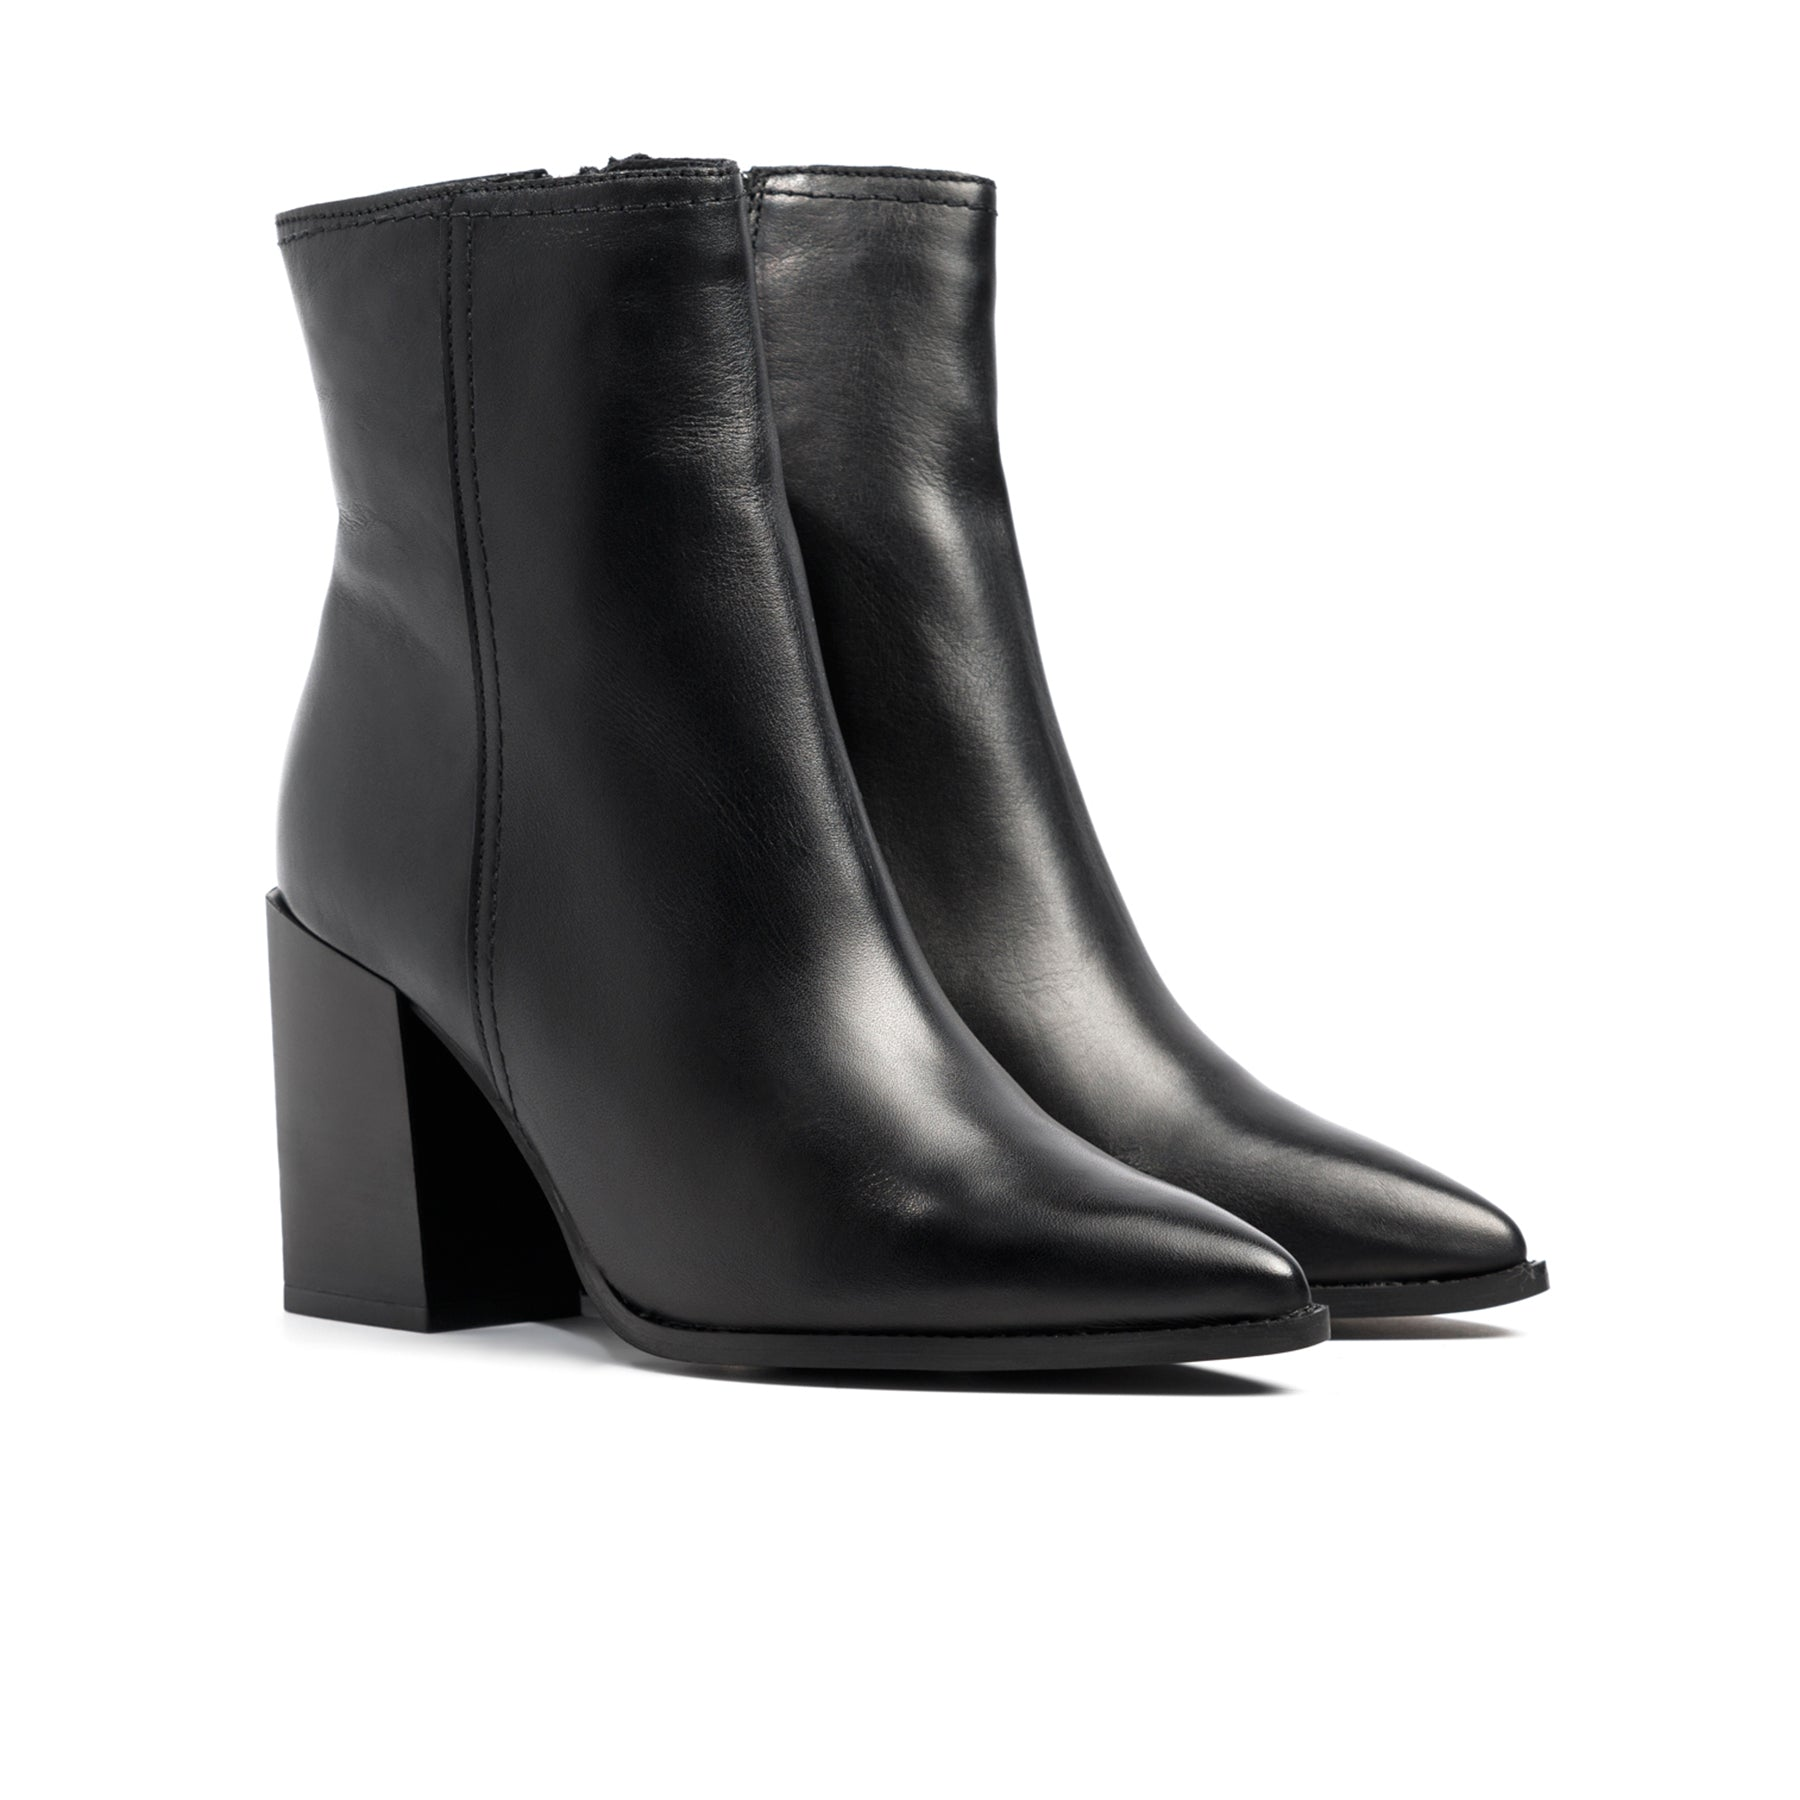 Cairo Black Leather Boots